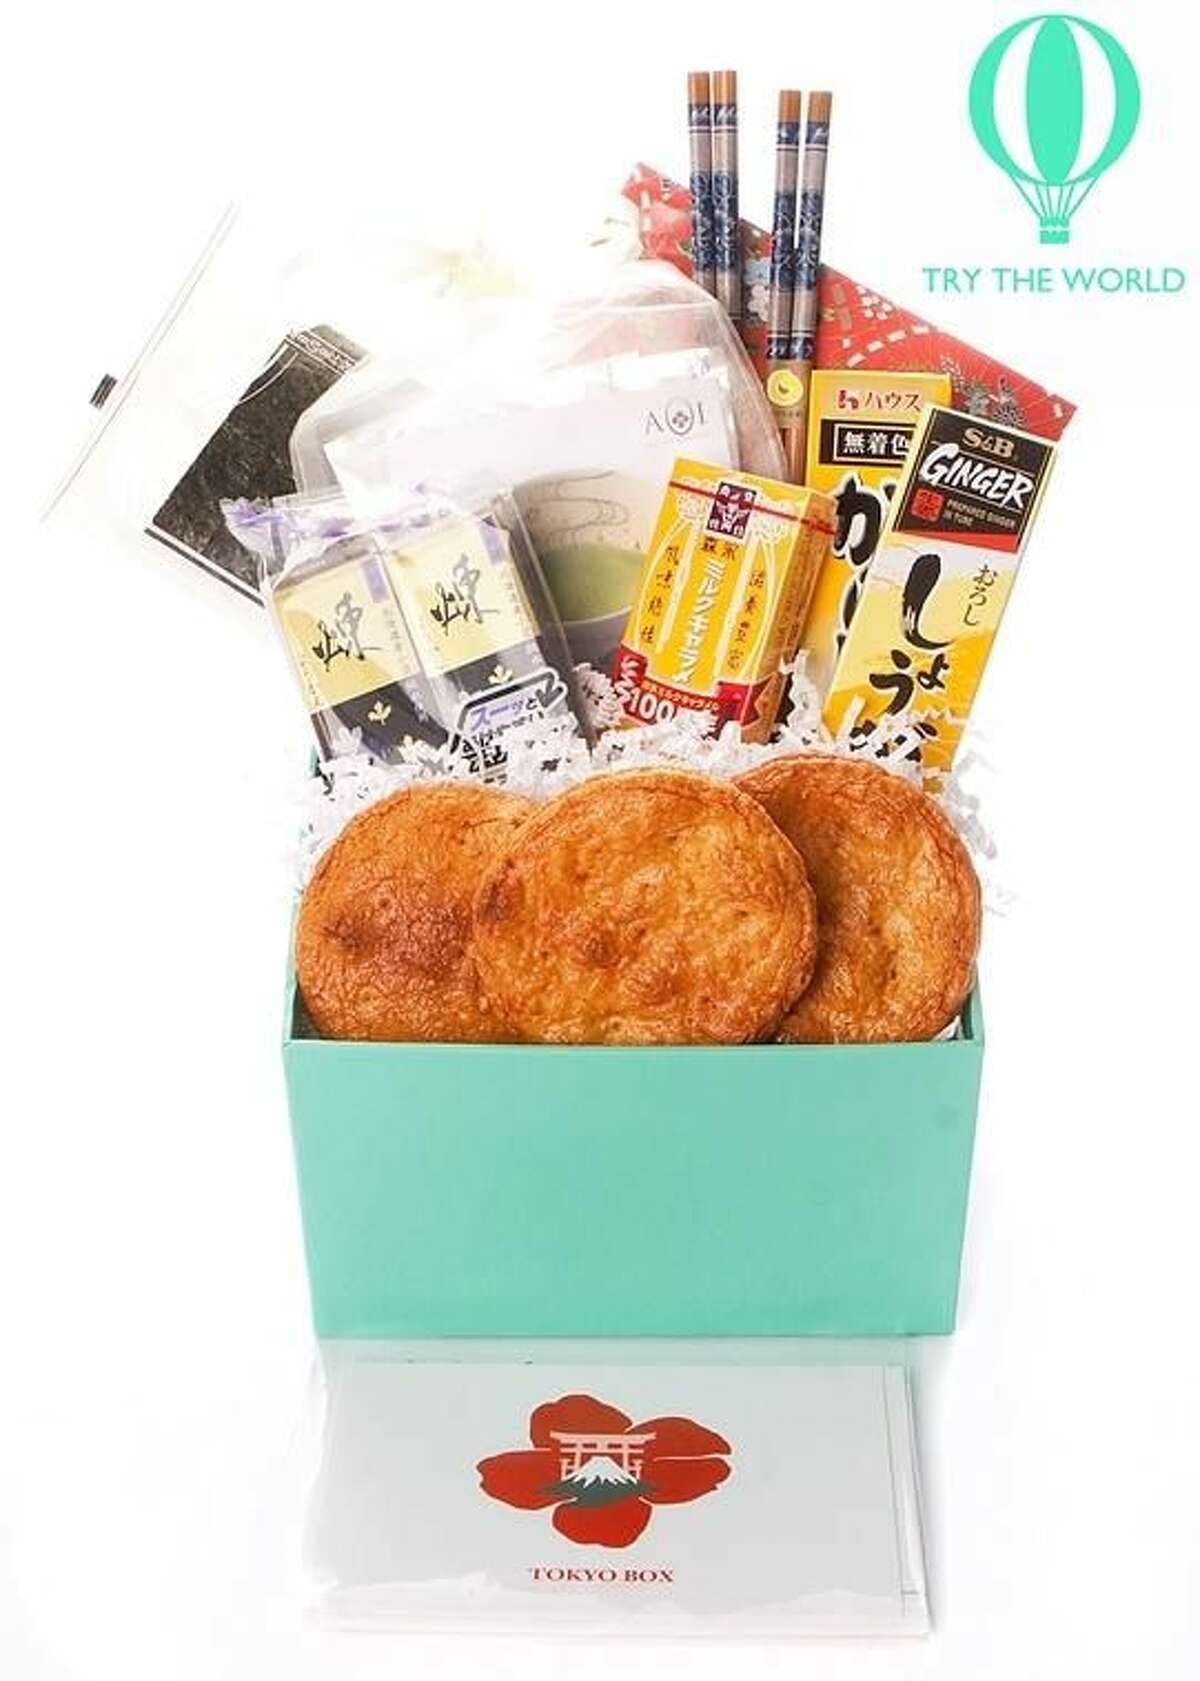 This handout product image provided by trytheworld.com shows the company's subscription offering. Trytheworld.com sends subscribers a box of hard-to-find items like jams, fine teas and films from a different city (Paris, Tokyo and Rio) every two months for a $45 fee for each box. (AP Photo/Trytheworld.com)